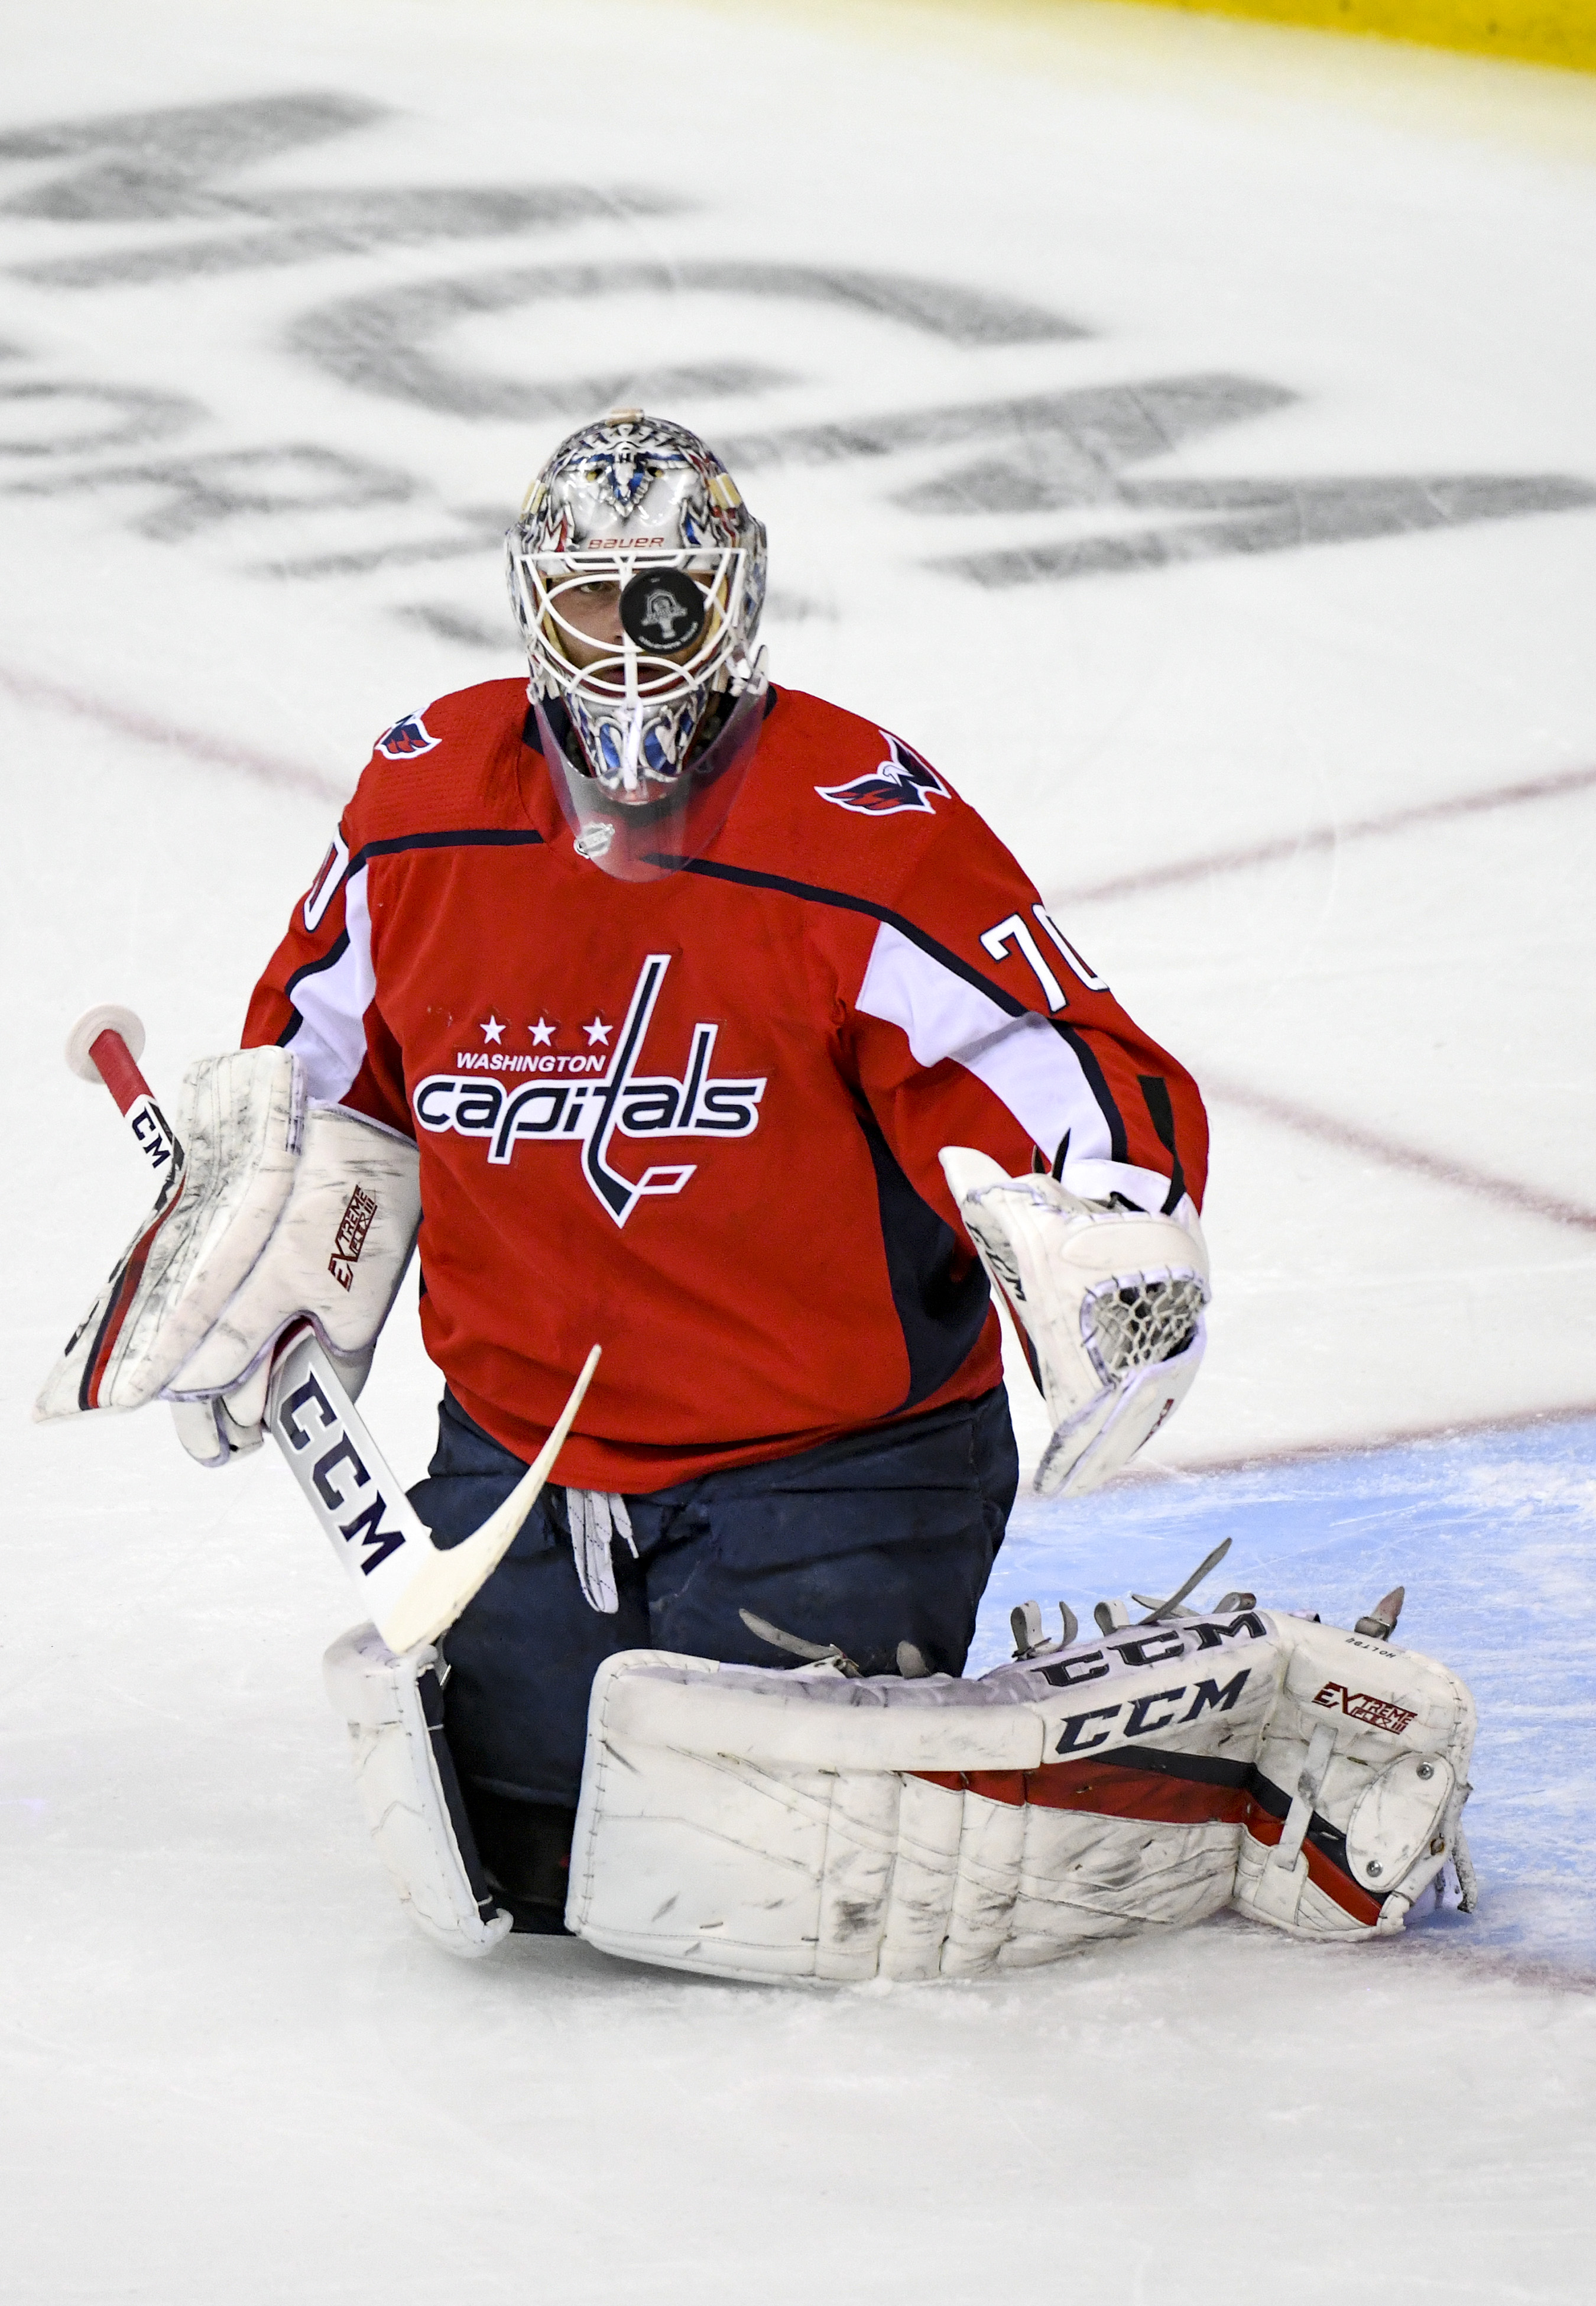 NHL: APR 24 Stanley Cup Playoffs First Round - Hurricanes at Capitals